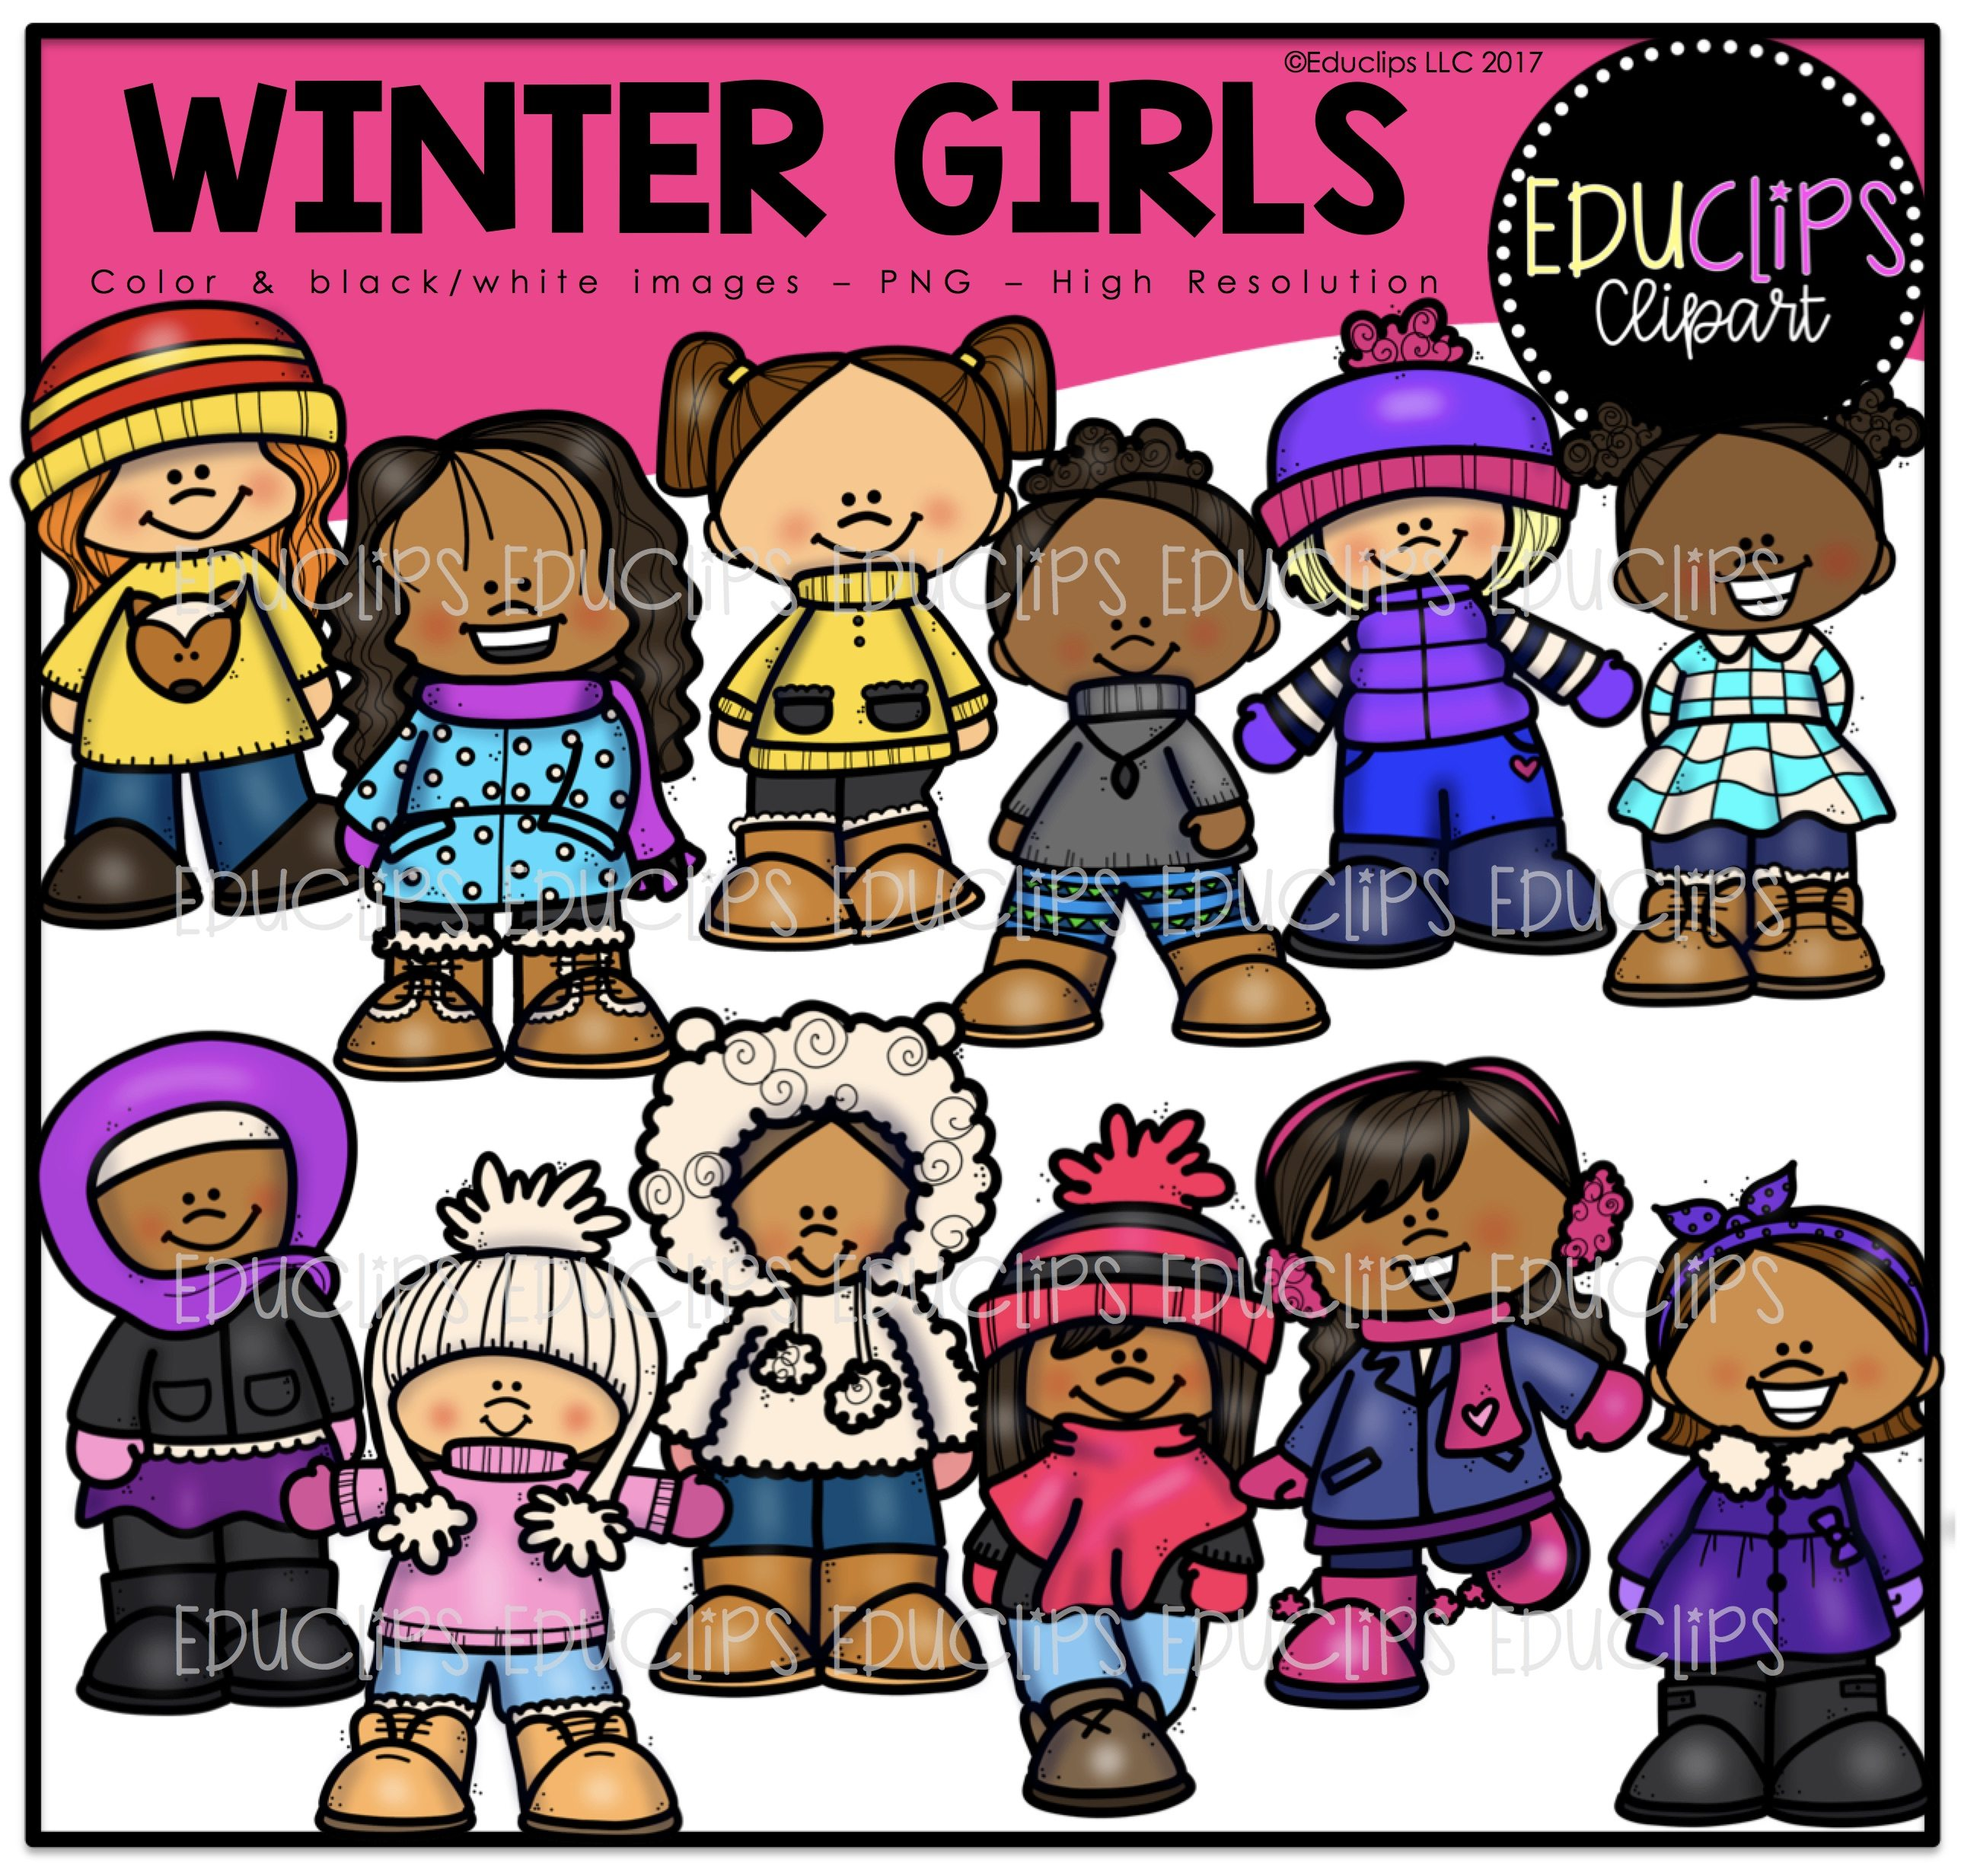 Skiing clipart educlips graphic freeuse library Winter Clip Art Mega Bundle (Color and B&W) graphic freeuse library